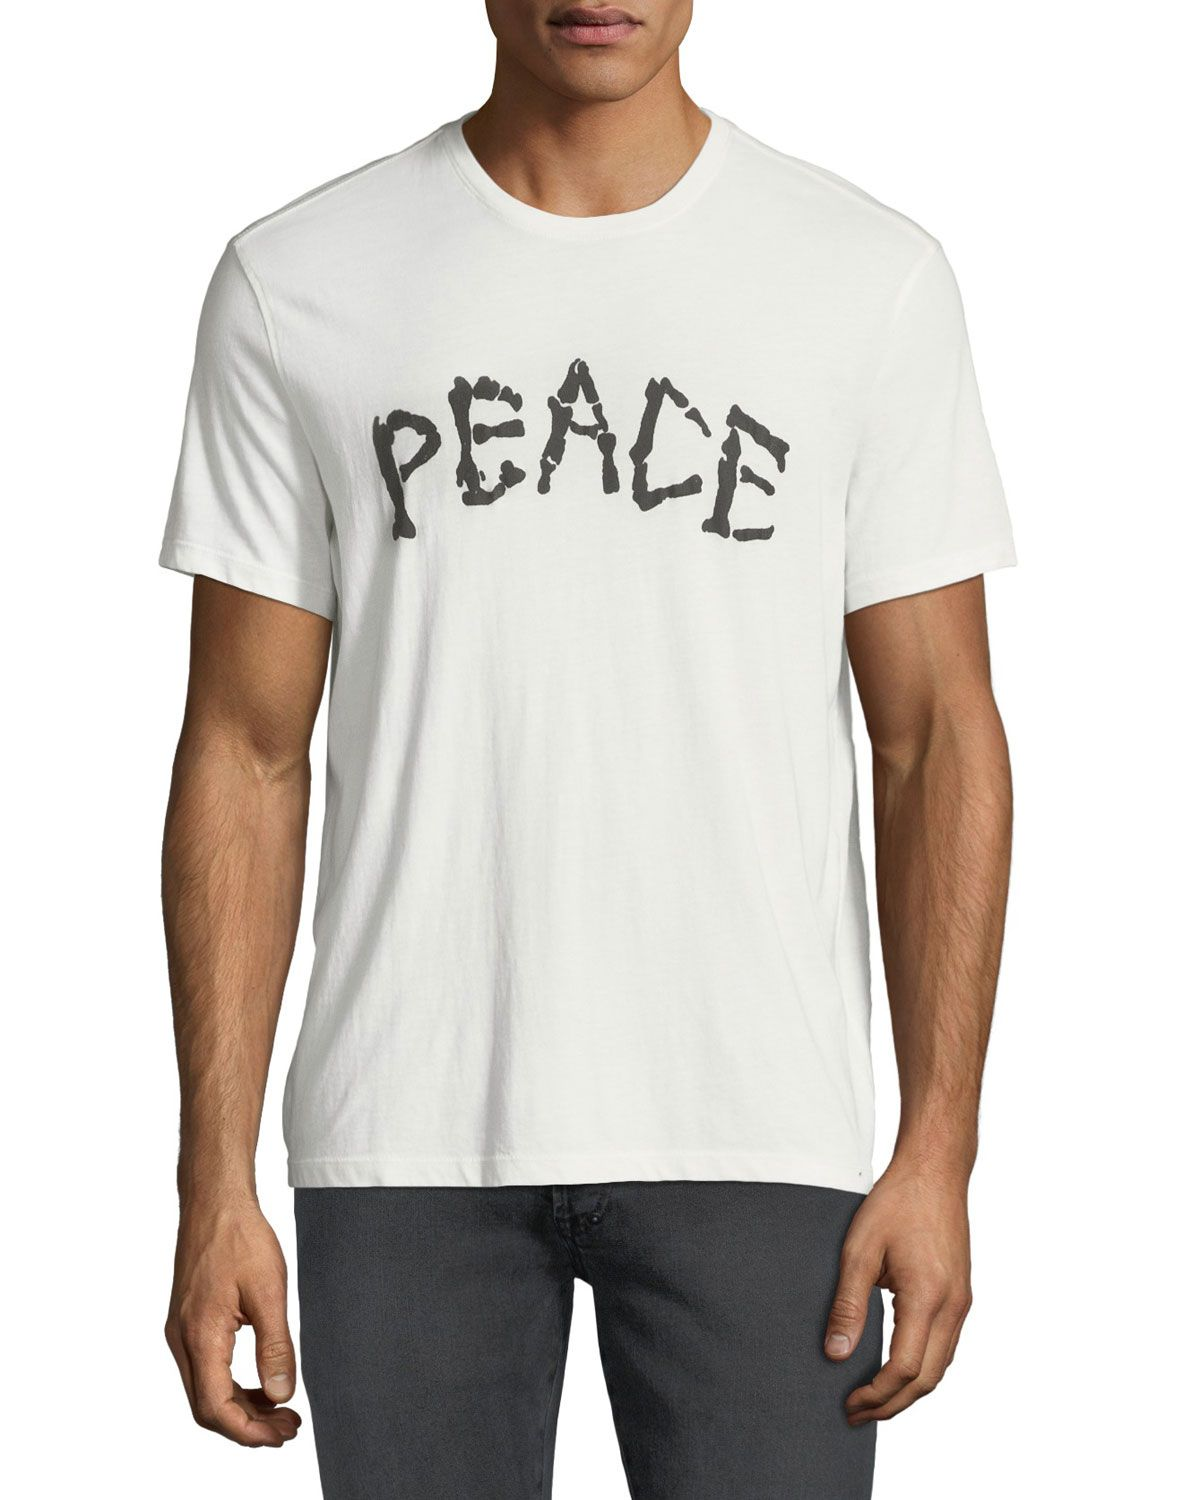 0d41622a JOHN VARVATOS MEN'S SKELETON PEACE GRAPHIC T-SHIRT. #johnvarvatos #cloth